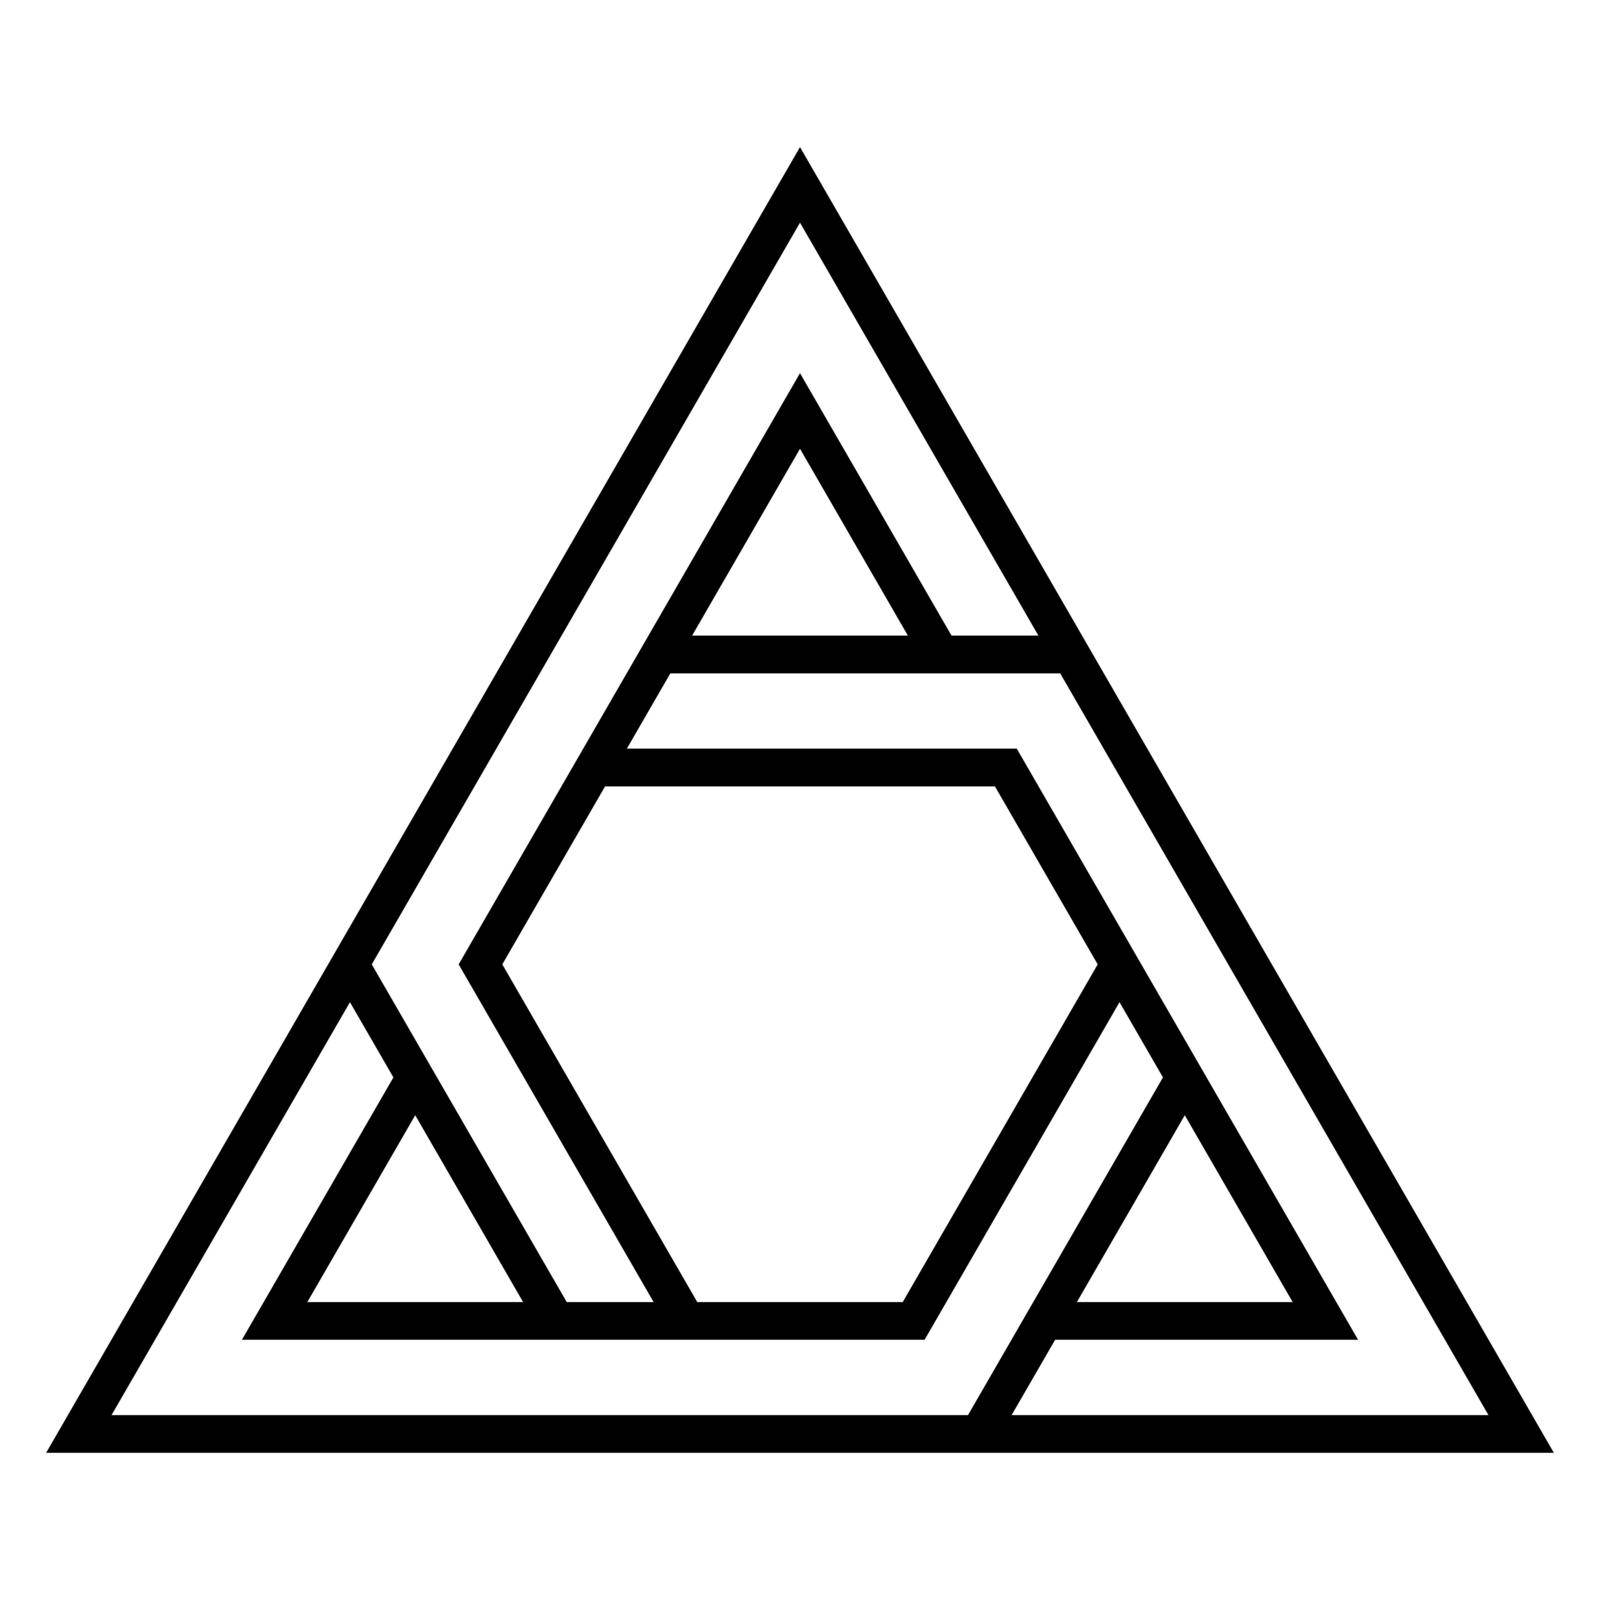 Logo triangle sign closed system, the vector triangle with twisted sides of the bisector by koksikoks